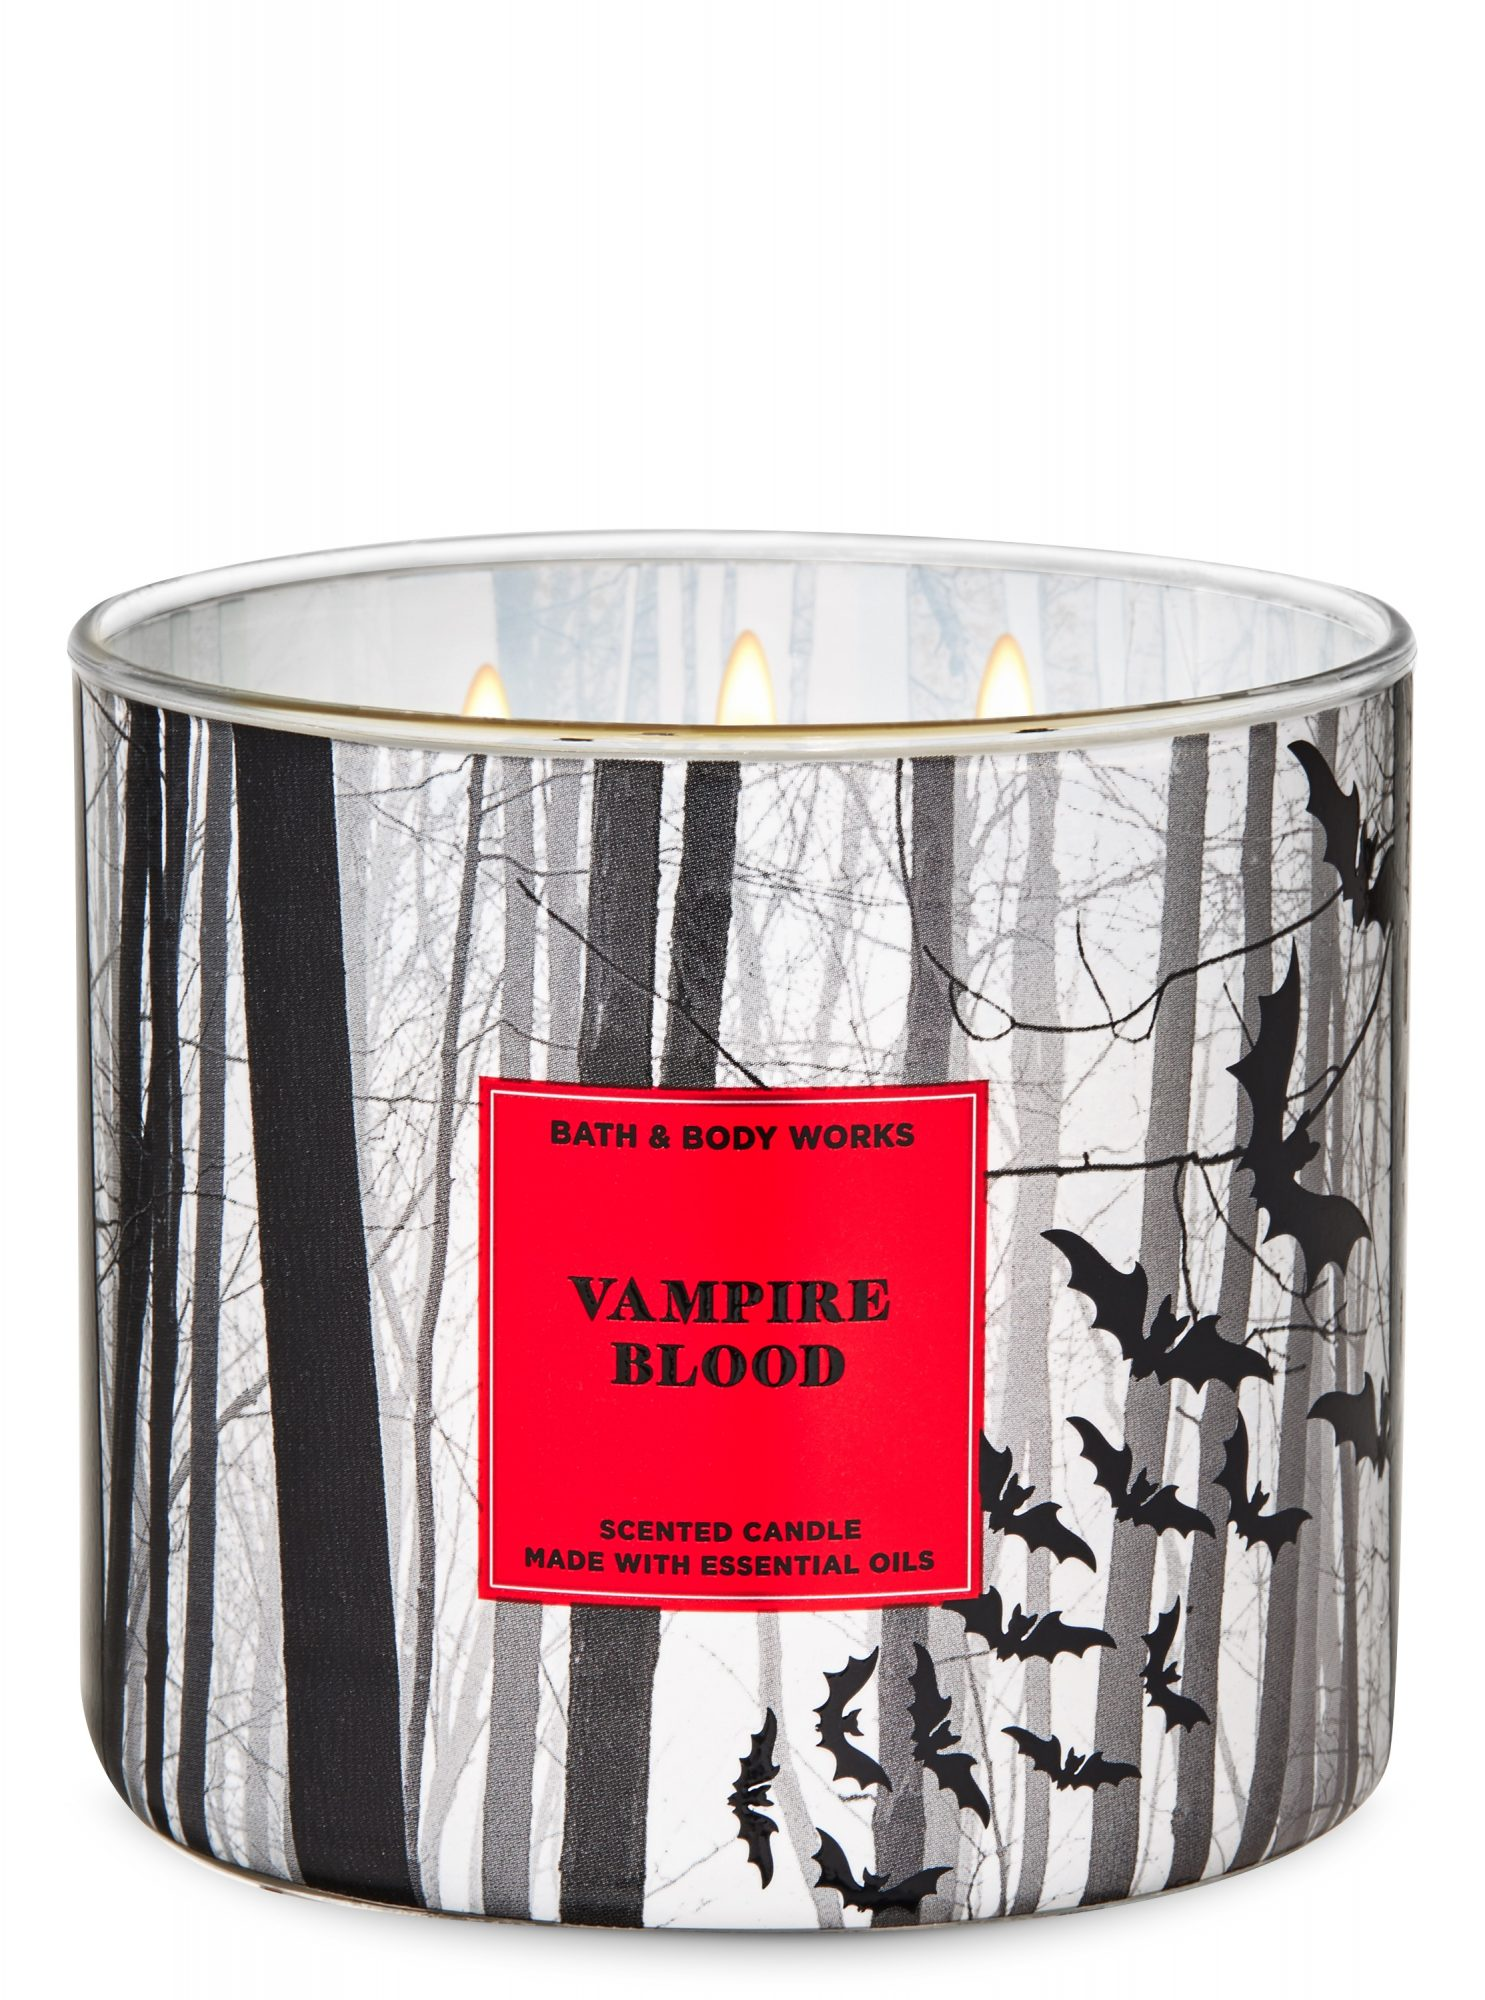 Bath & Body Works Vampire Blood 3-Wick